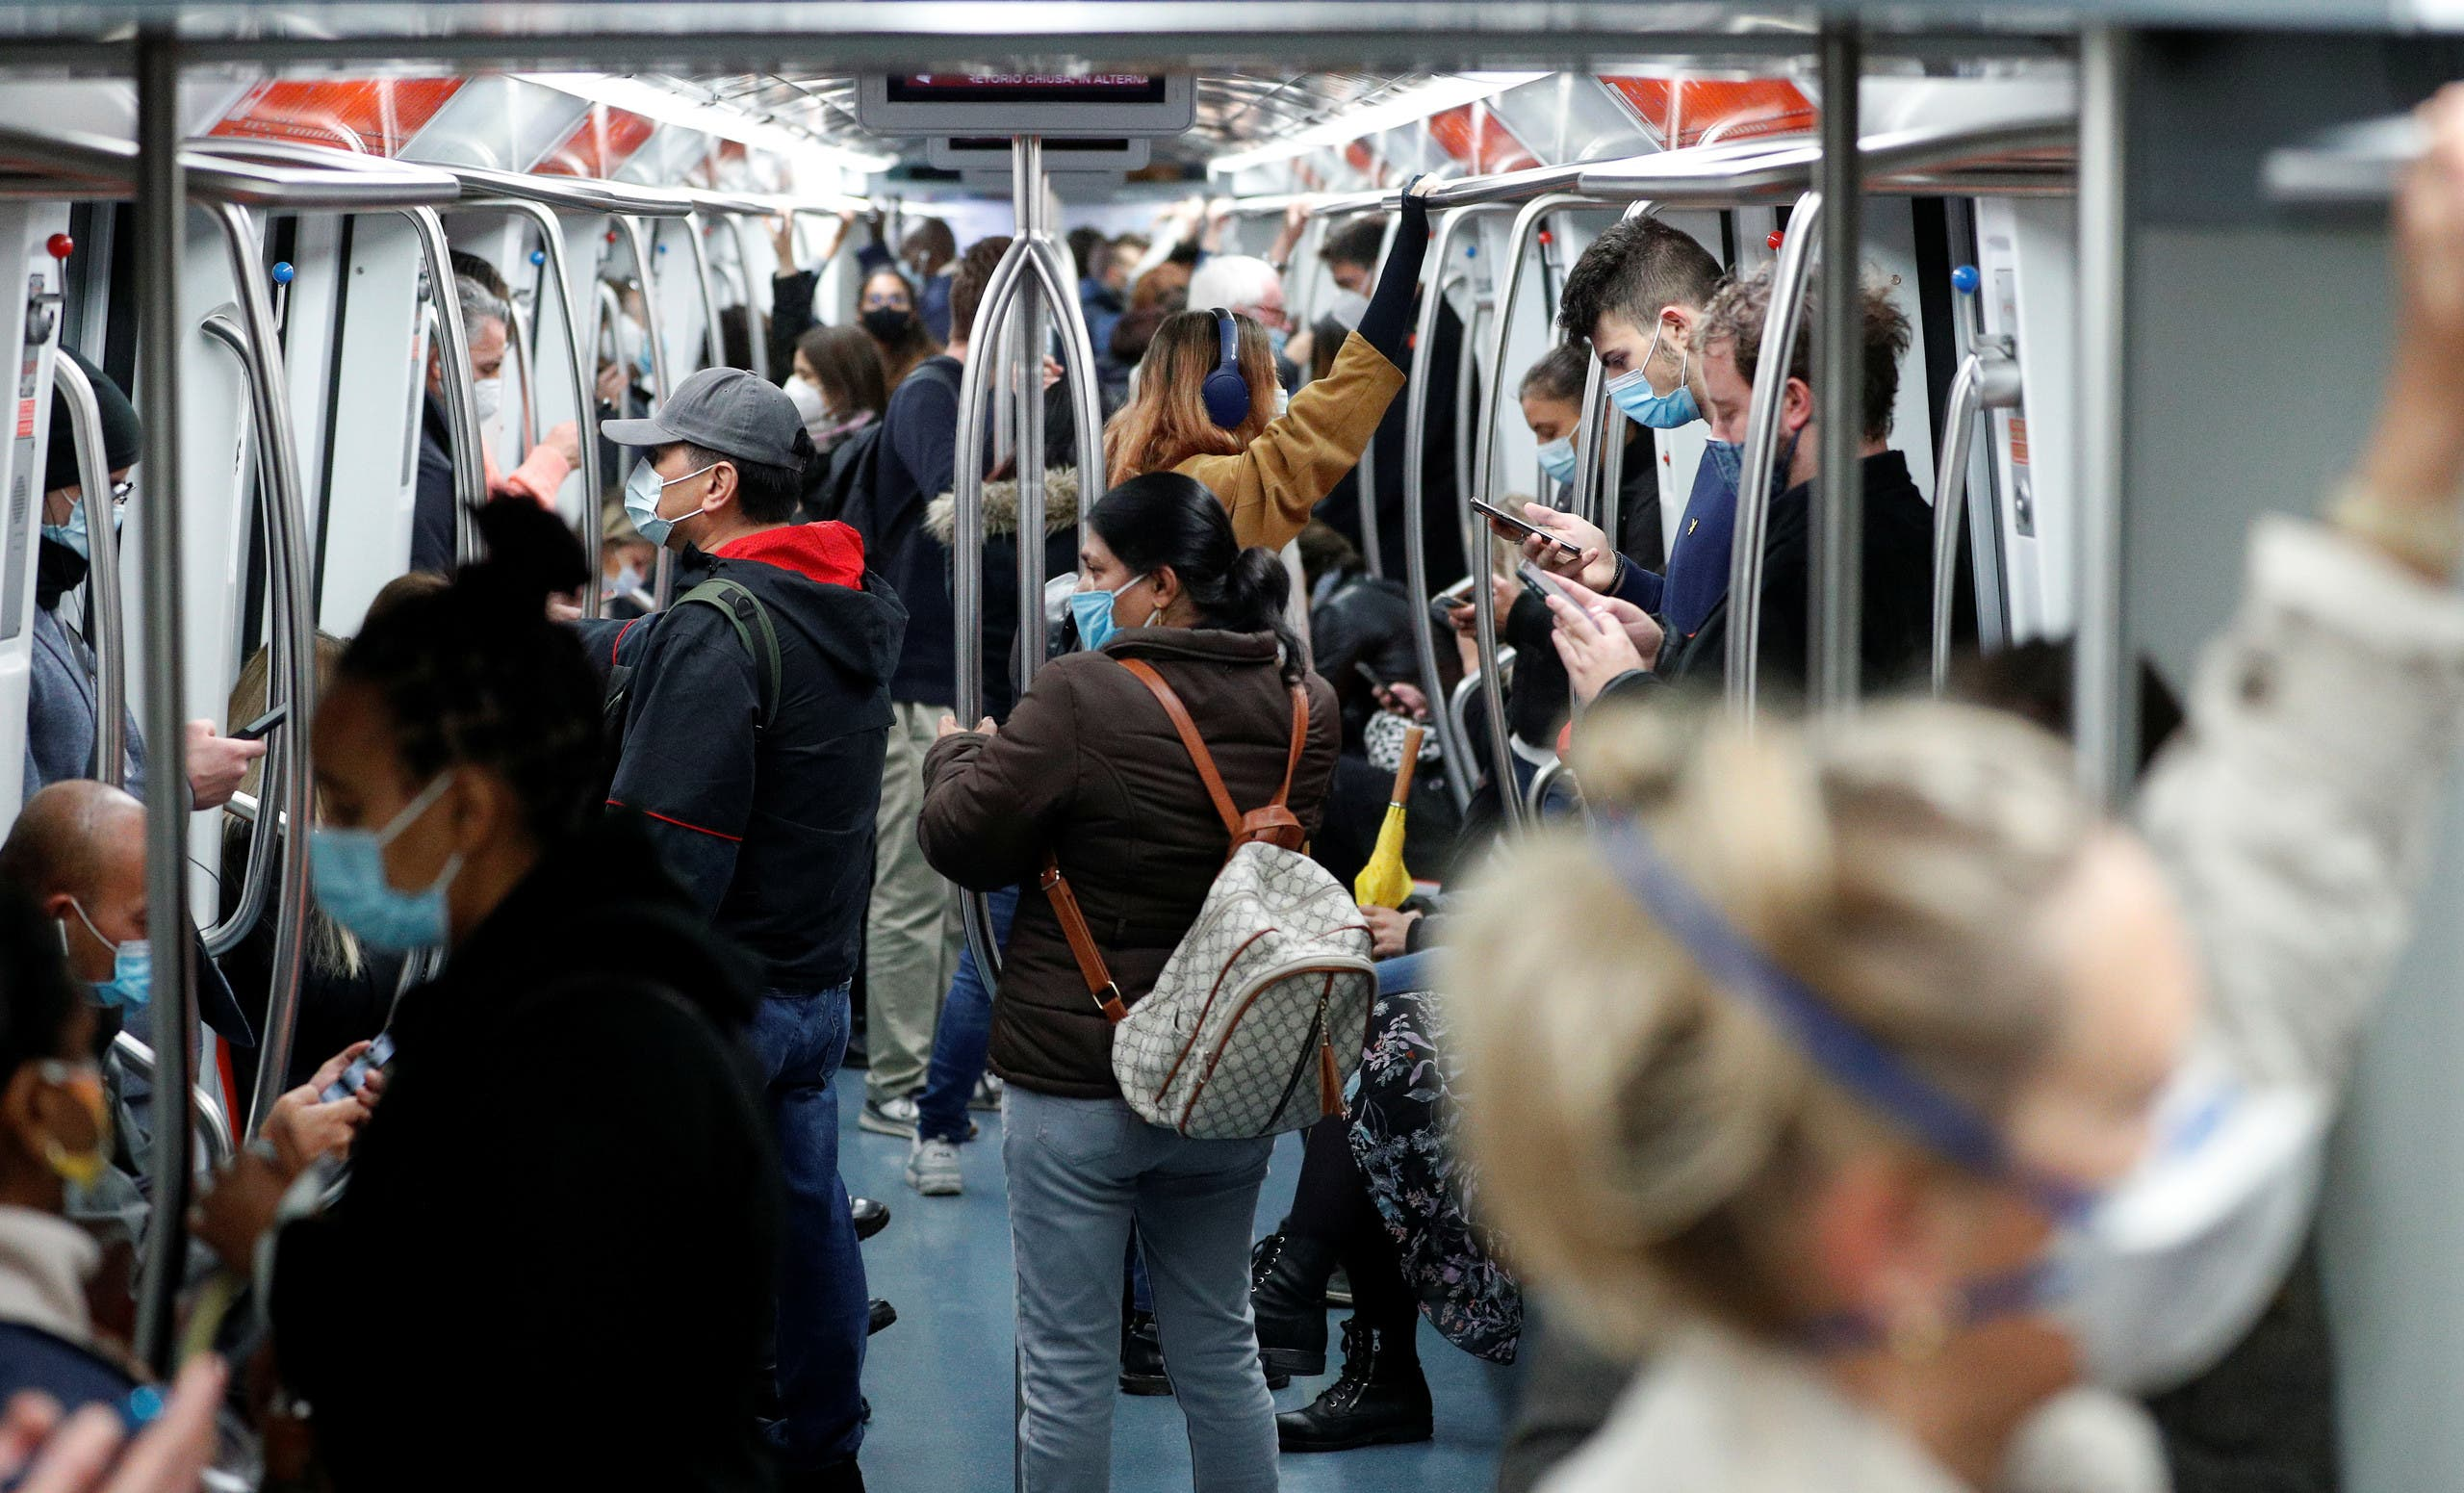 Passengers travel on a subway as Italy adopts new restrictions in Rome. (File photo: Reuters)